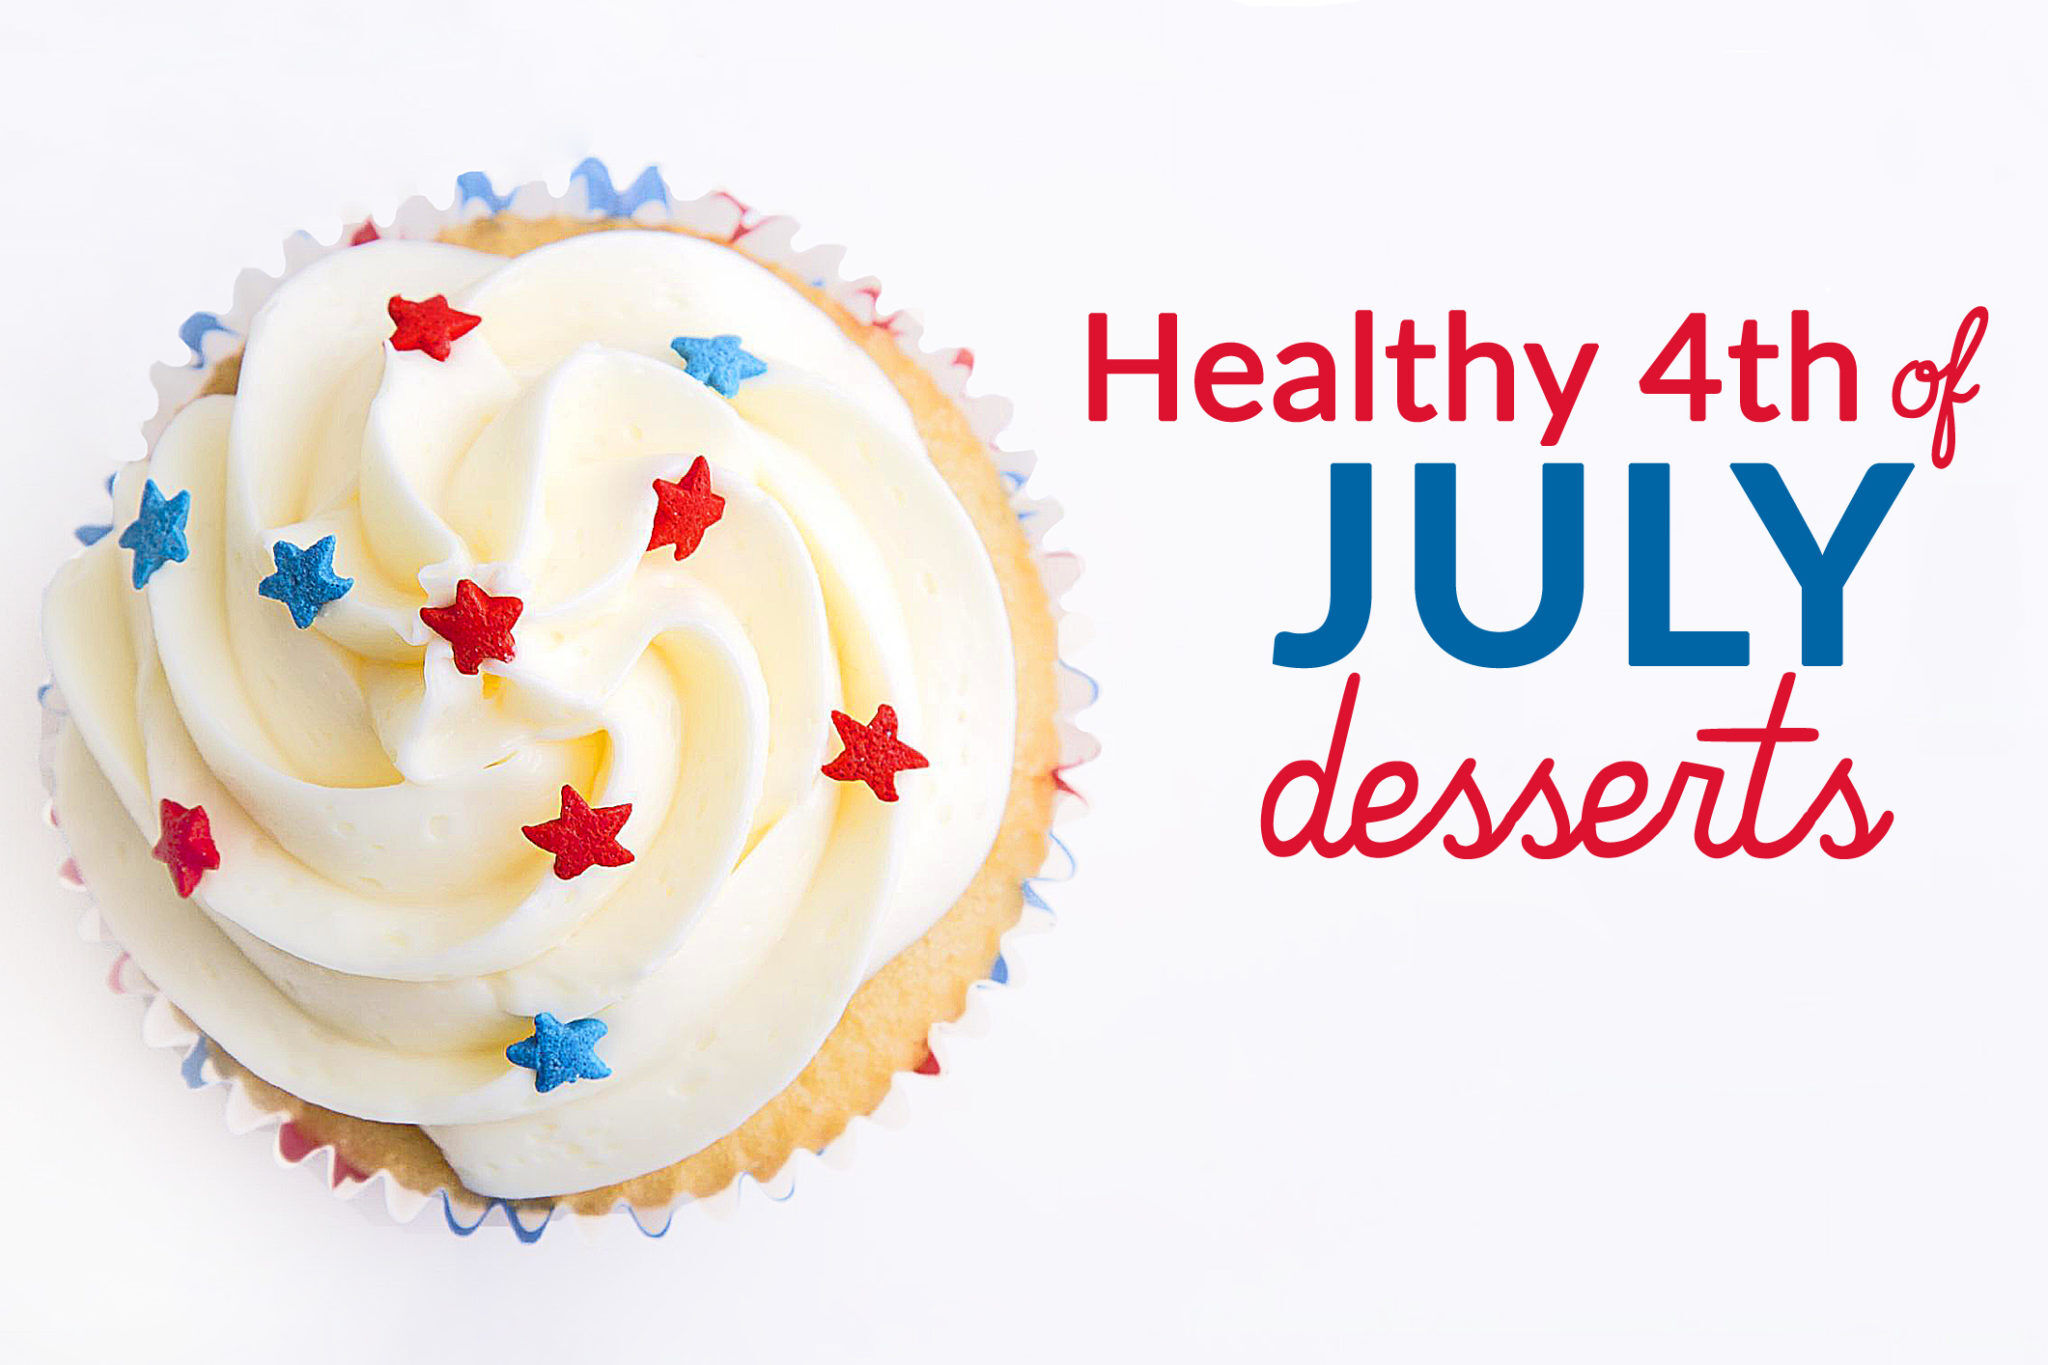 Recipe Roundup: Healthy 4th of July Desserts